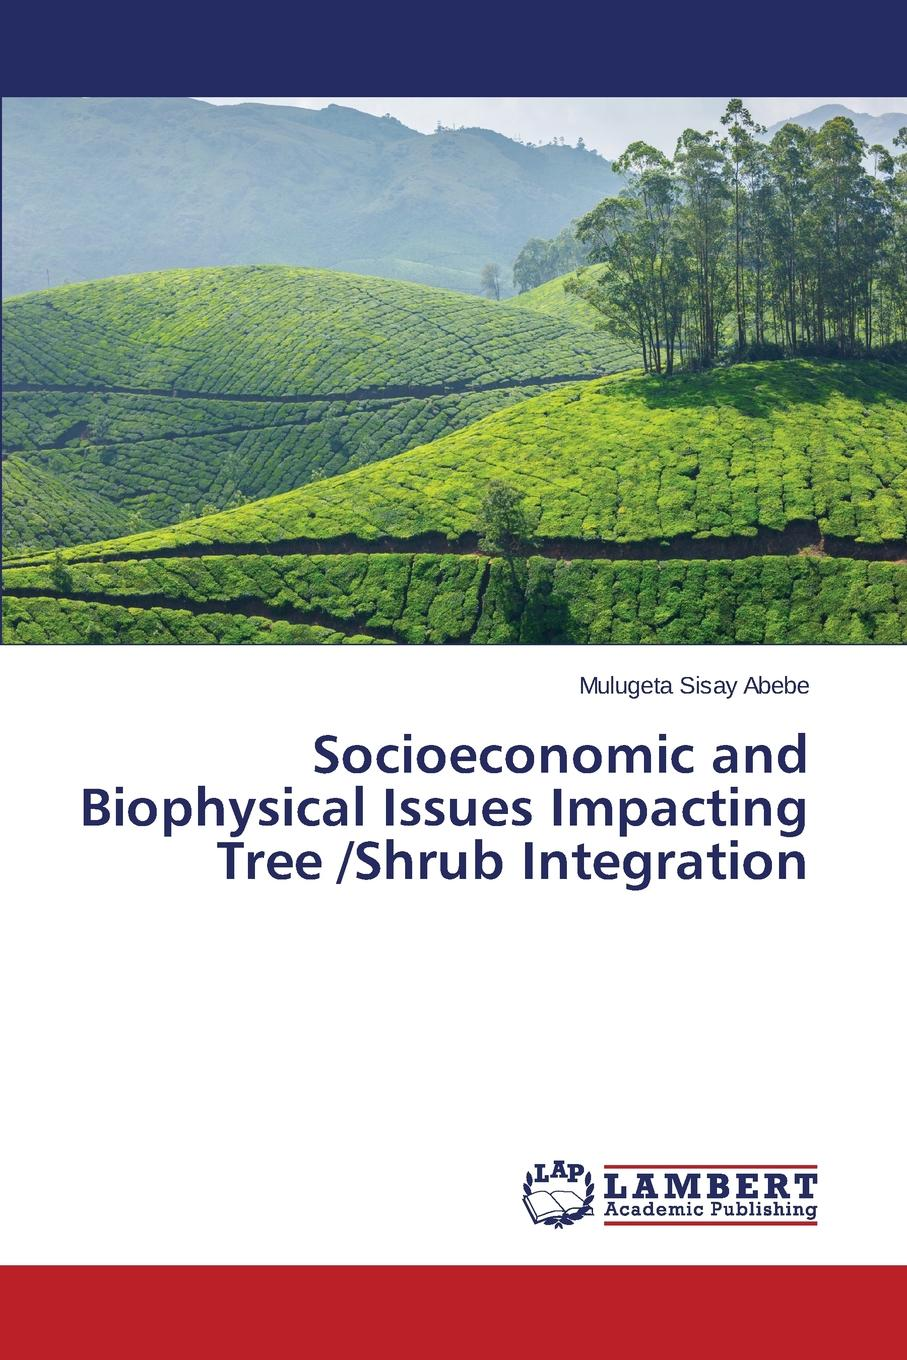 Abebe Mulugeta Sisay Socioeconomic and Biophysical Issues Impacting Tree /Shrub Integration